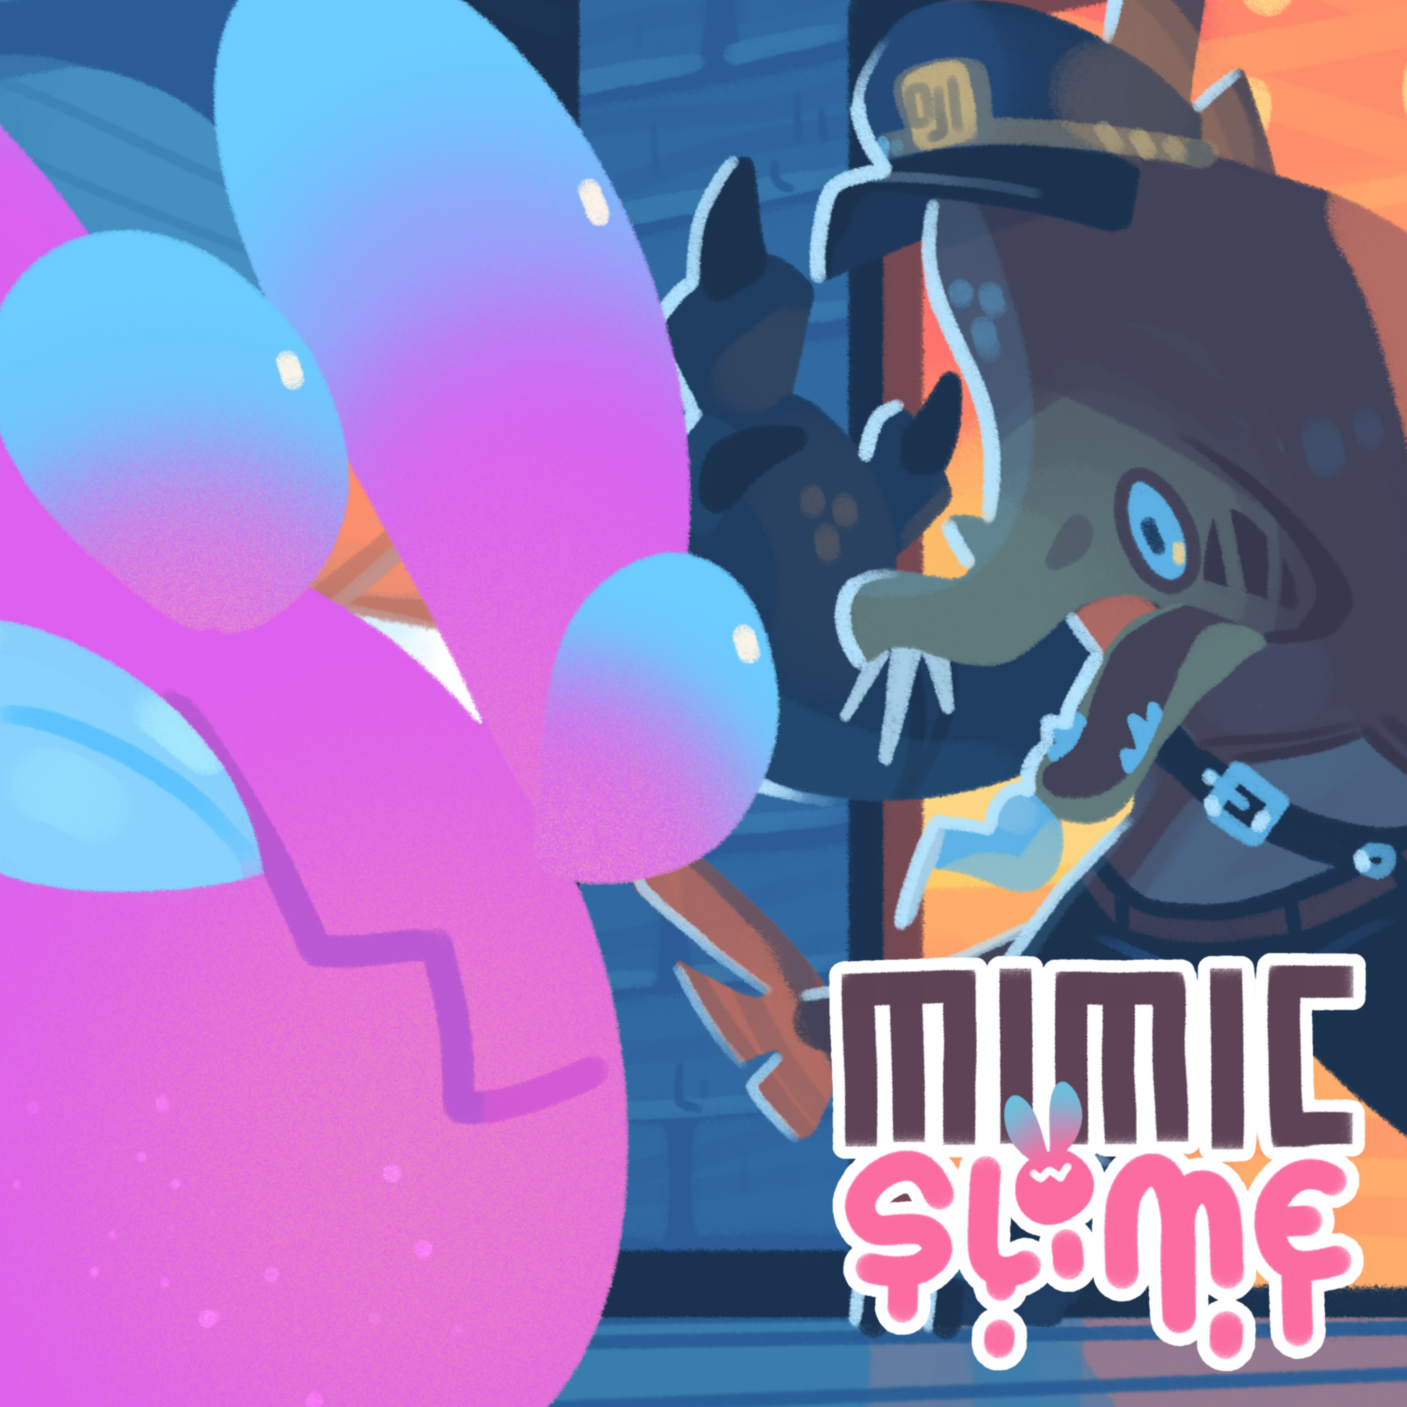 New MIMIC SLIME Entry 02